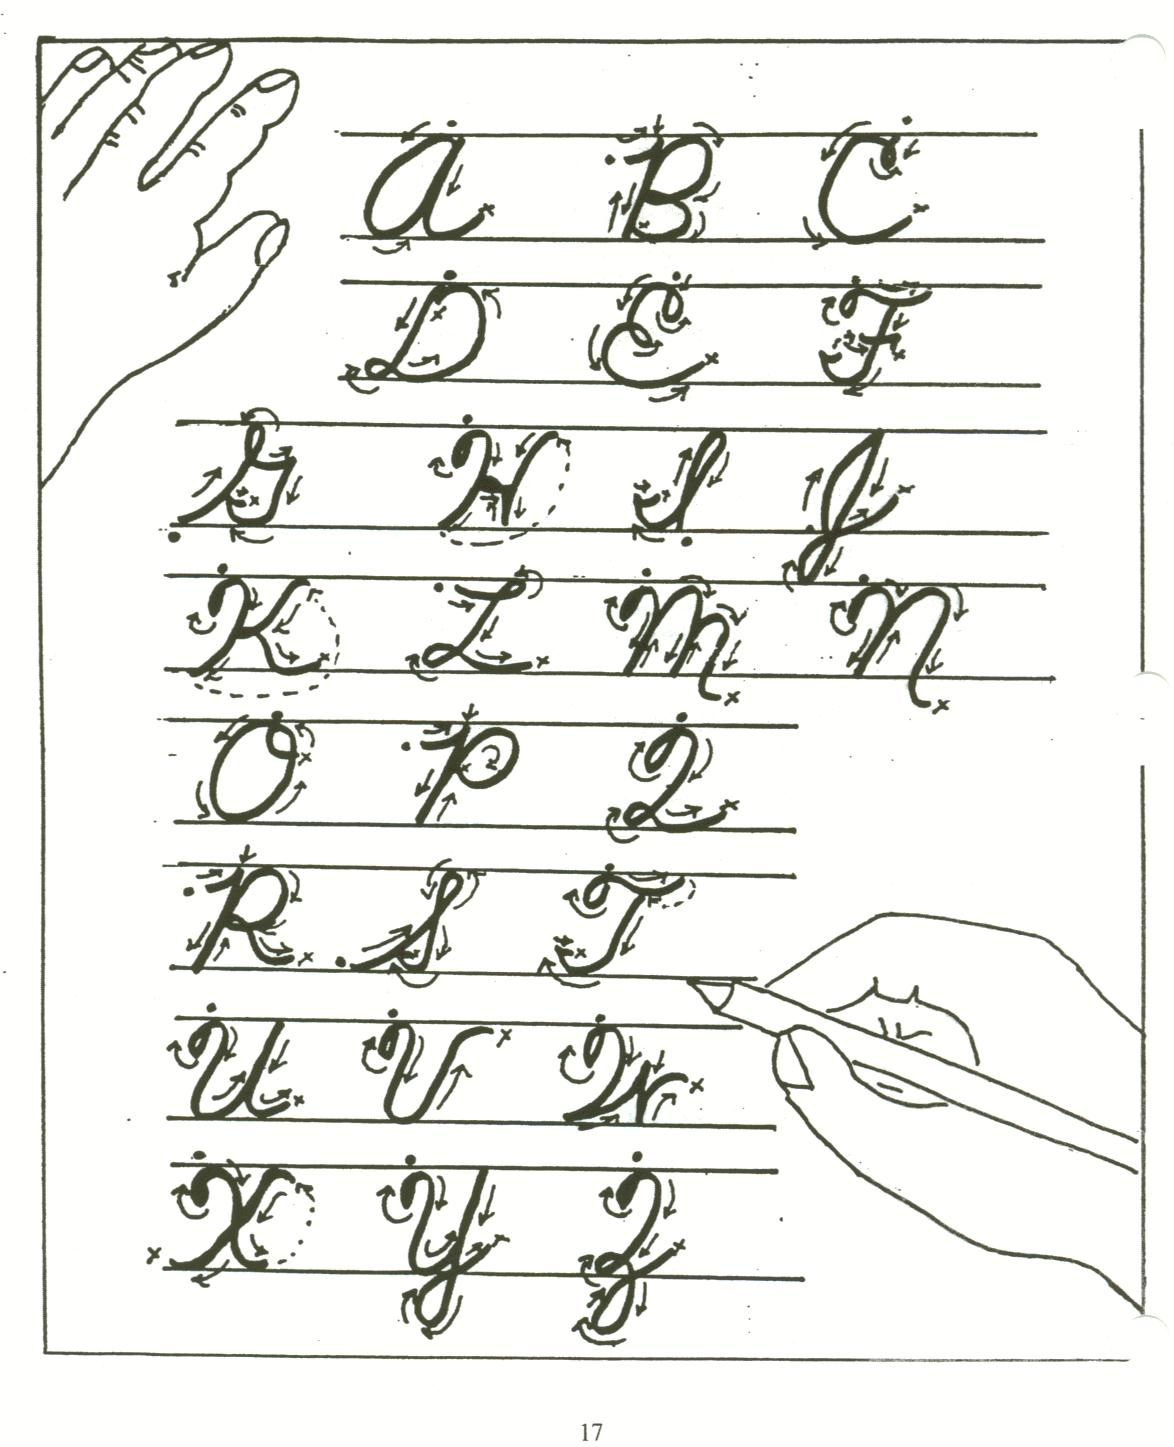 ABCs Handwriting Analysis Techniques Interpretations